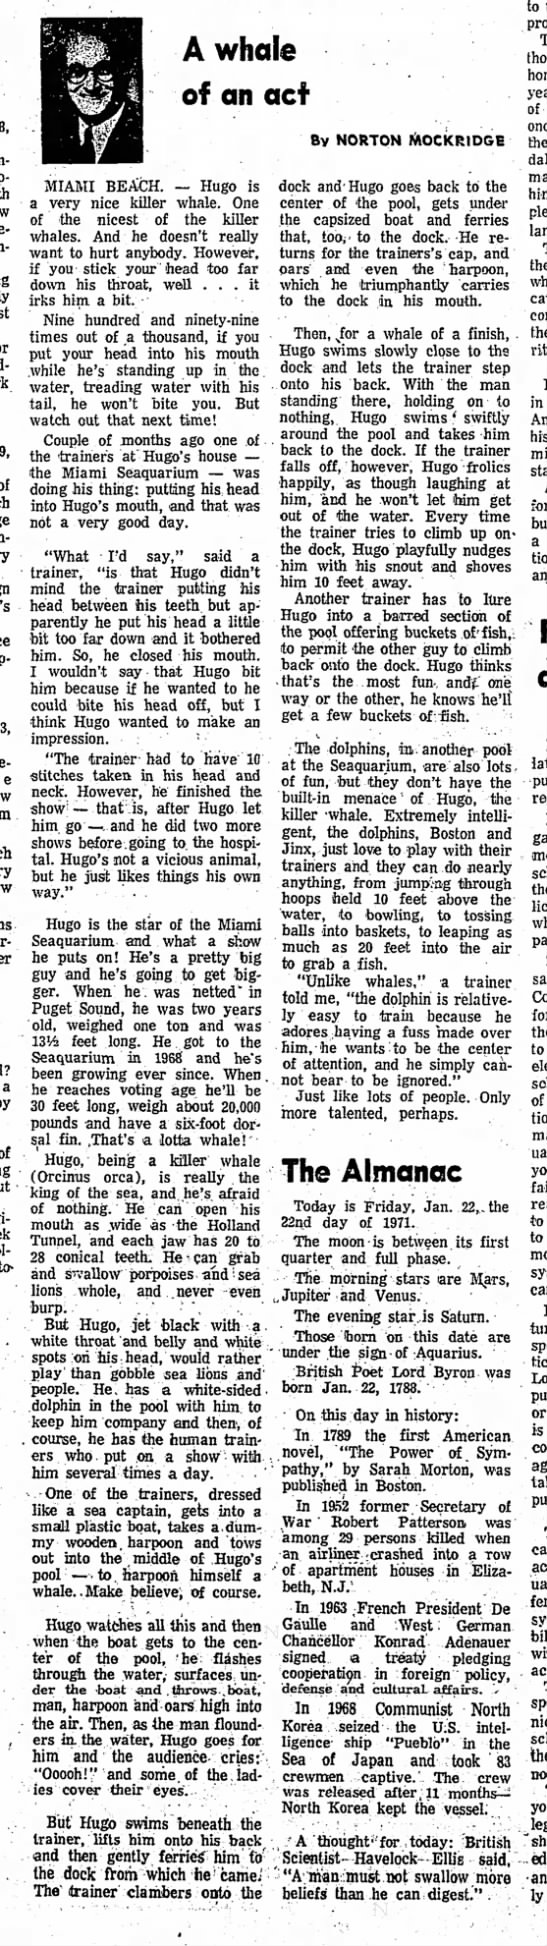 Redlands Daily Facts (Redlands, California) January 22, 1971 -